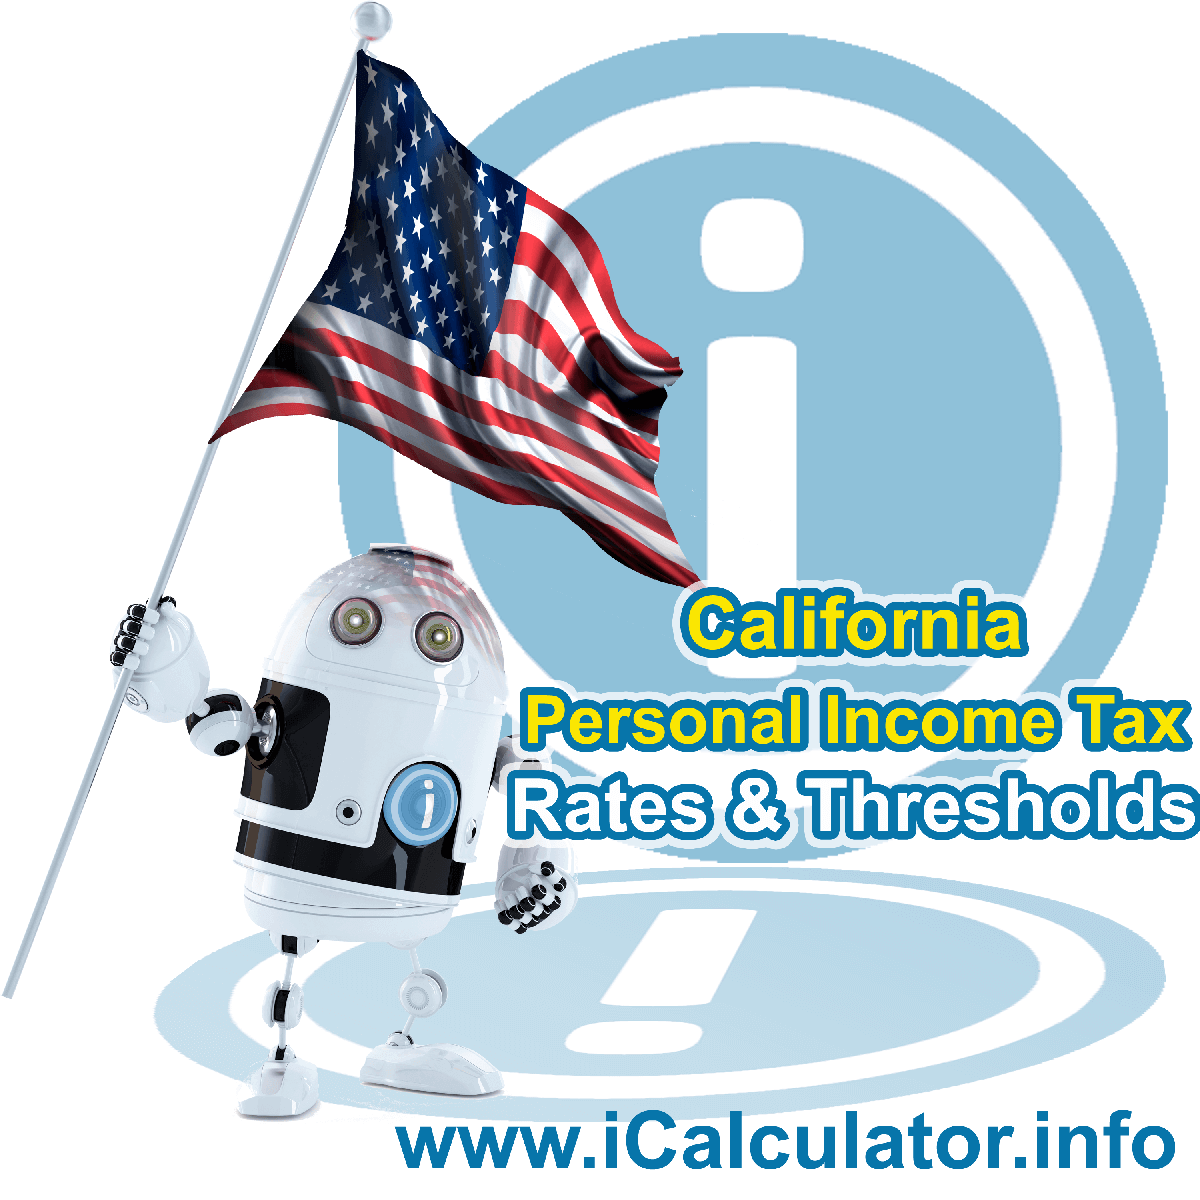 California State Tax Tables 2015. This image displays details of the California State Tax Tables for the 2015 tax return year which is provided in support of the 2015 US Tax Calculator